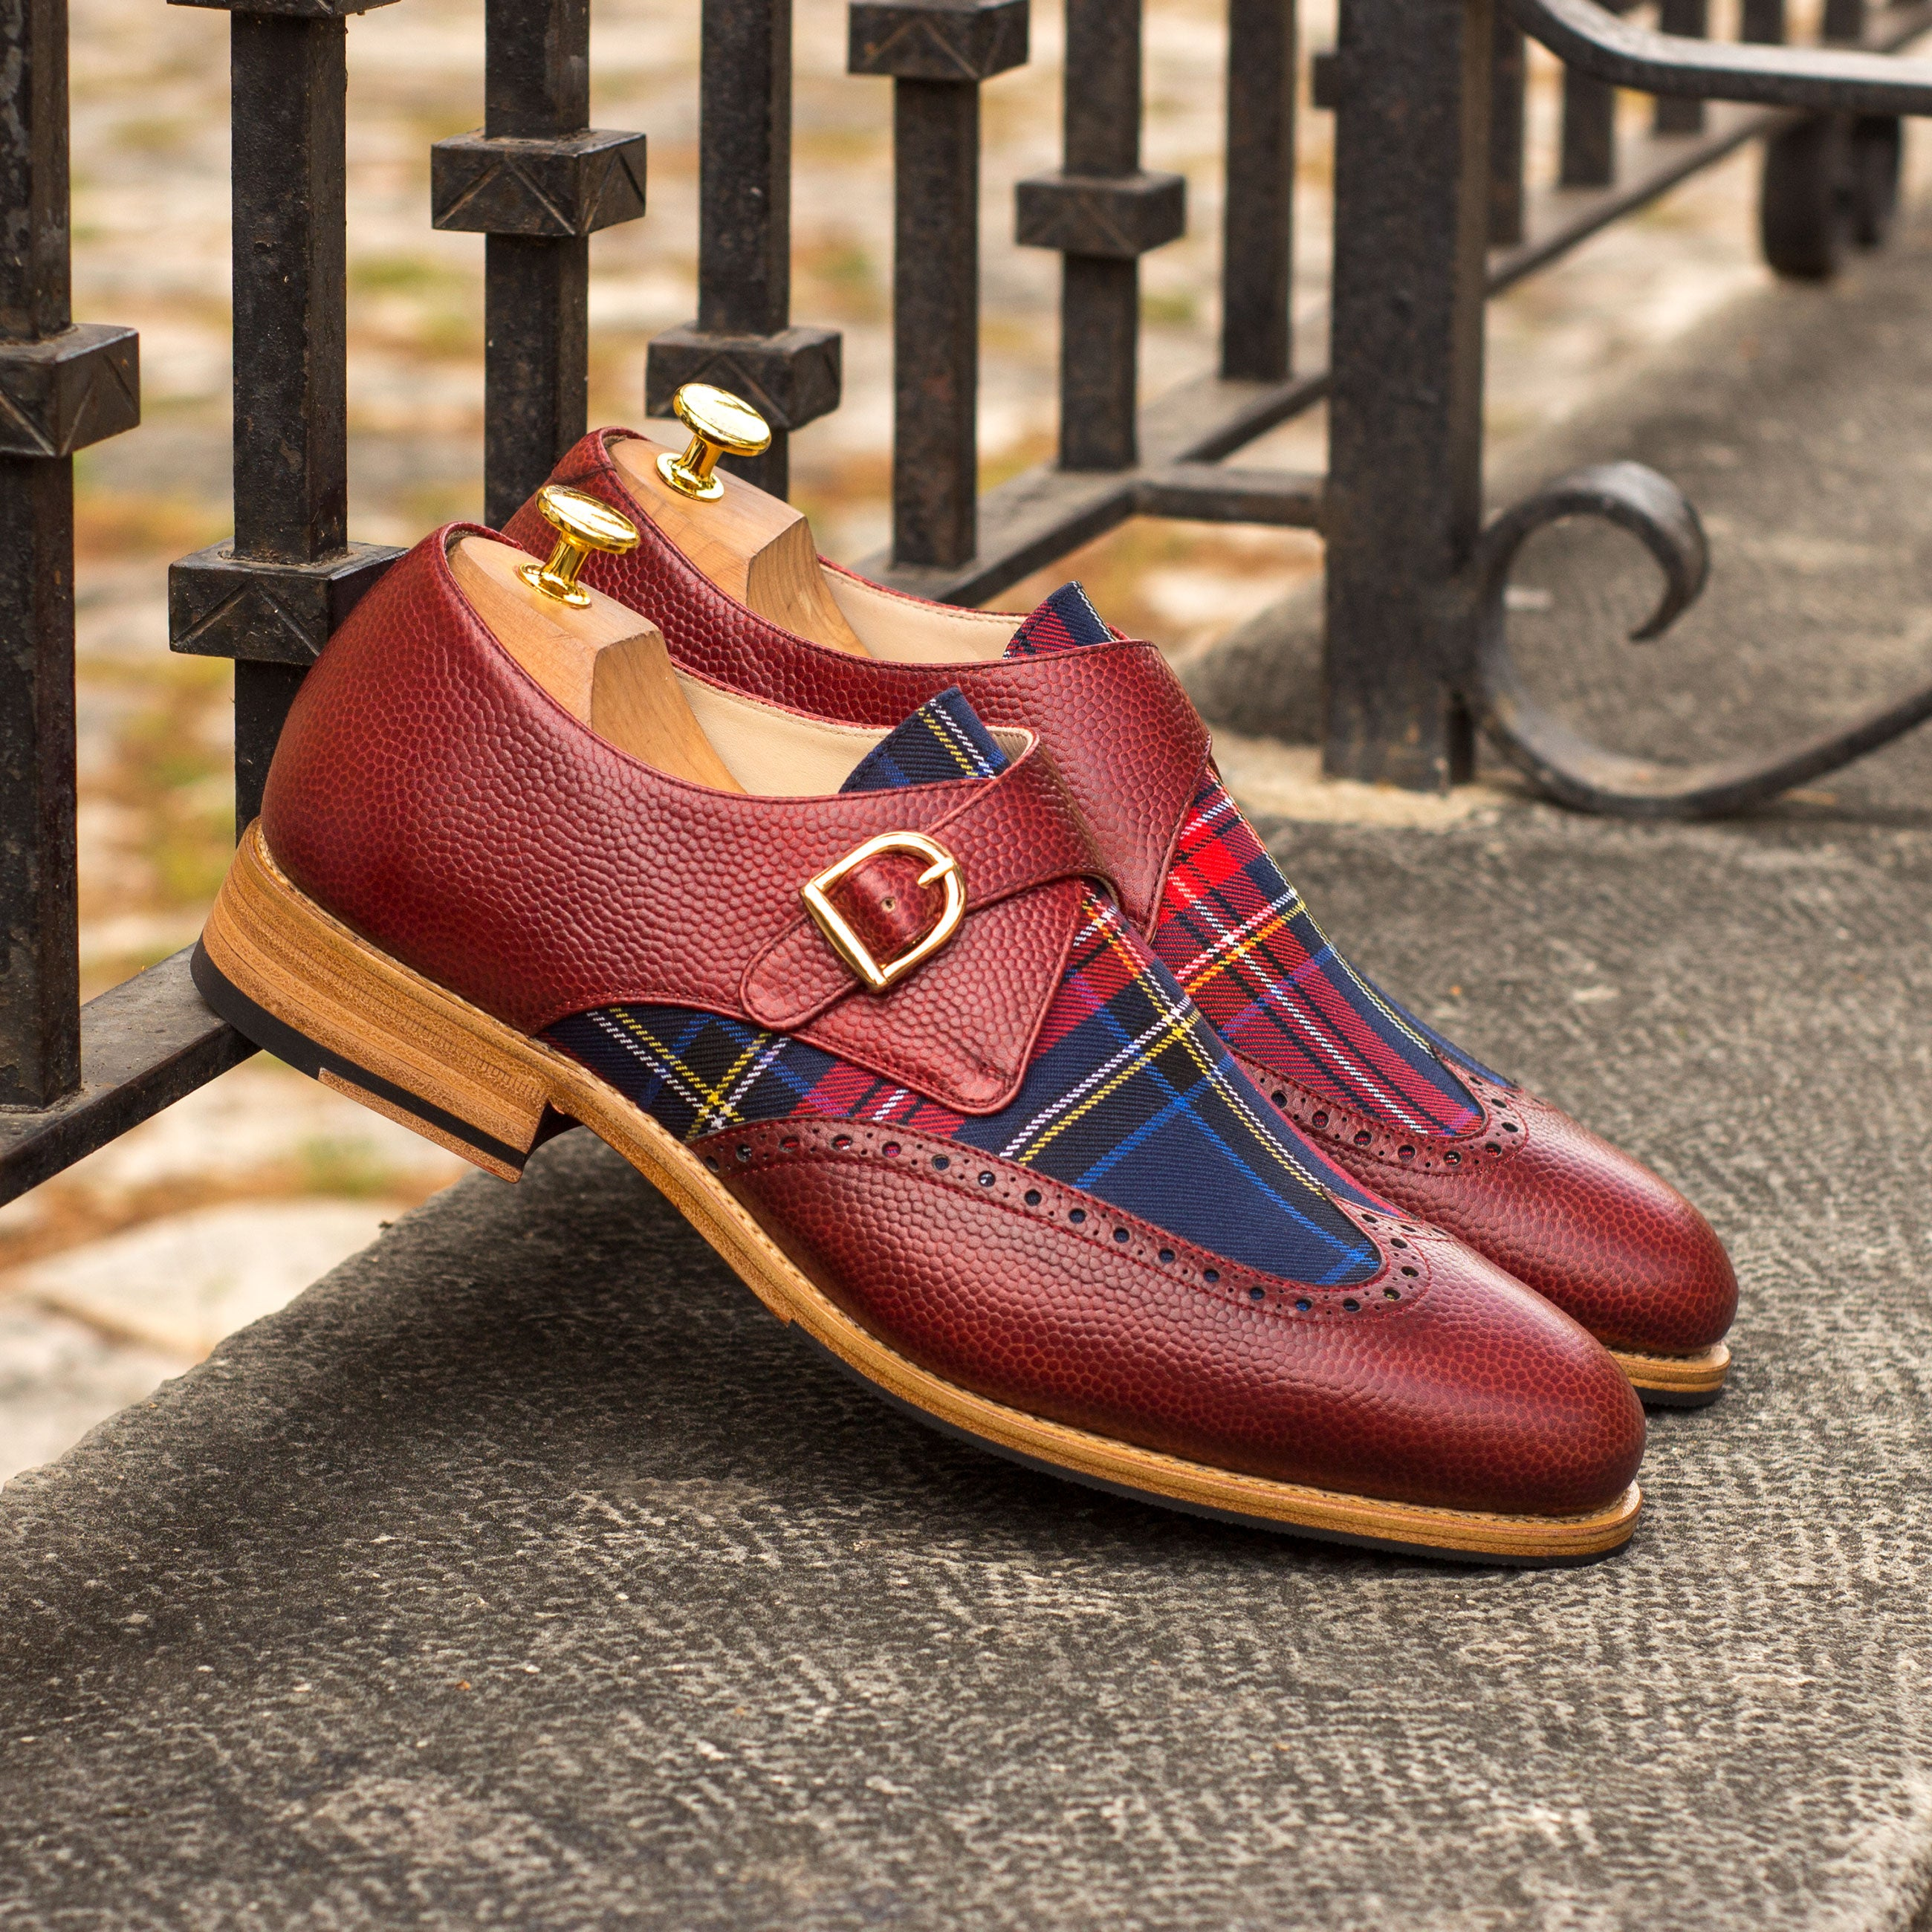 Single Monk Strap Red Pebble Grain Shoe